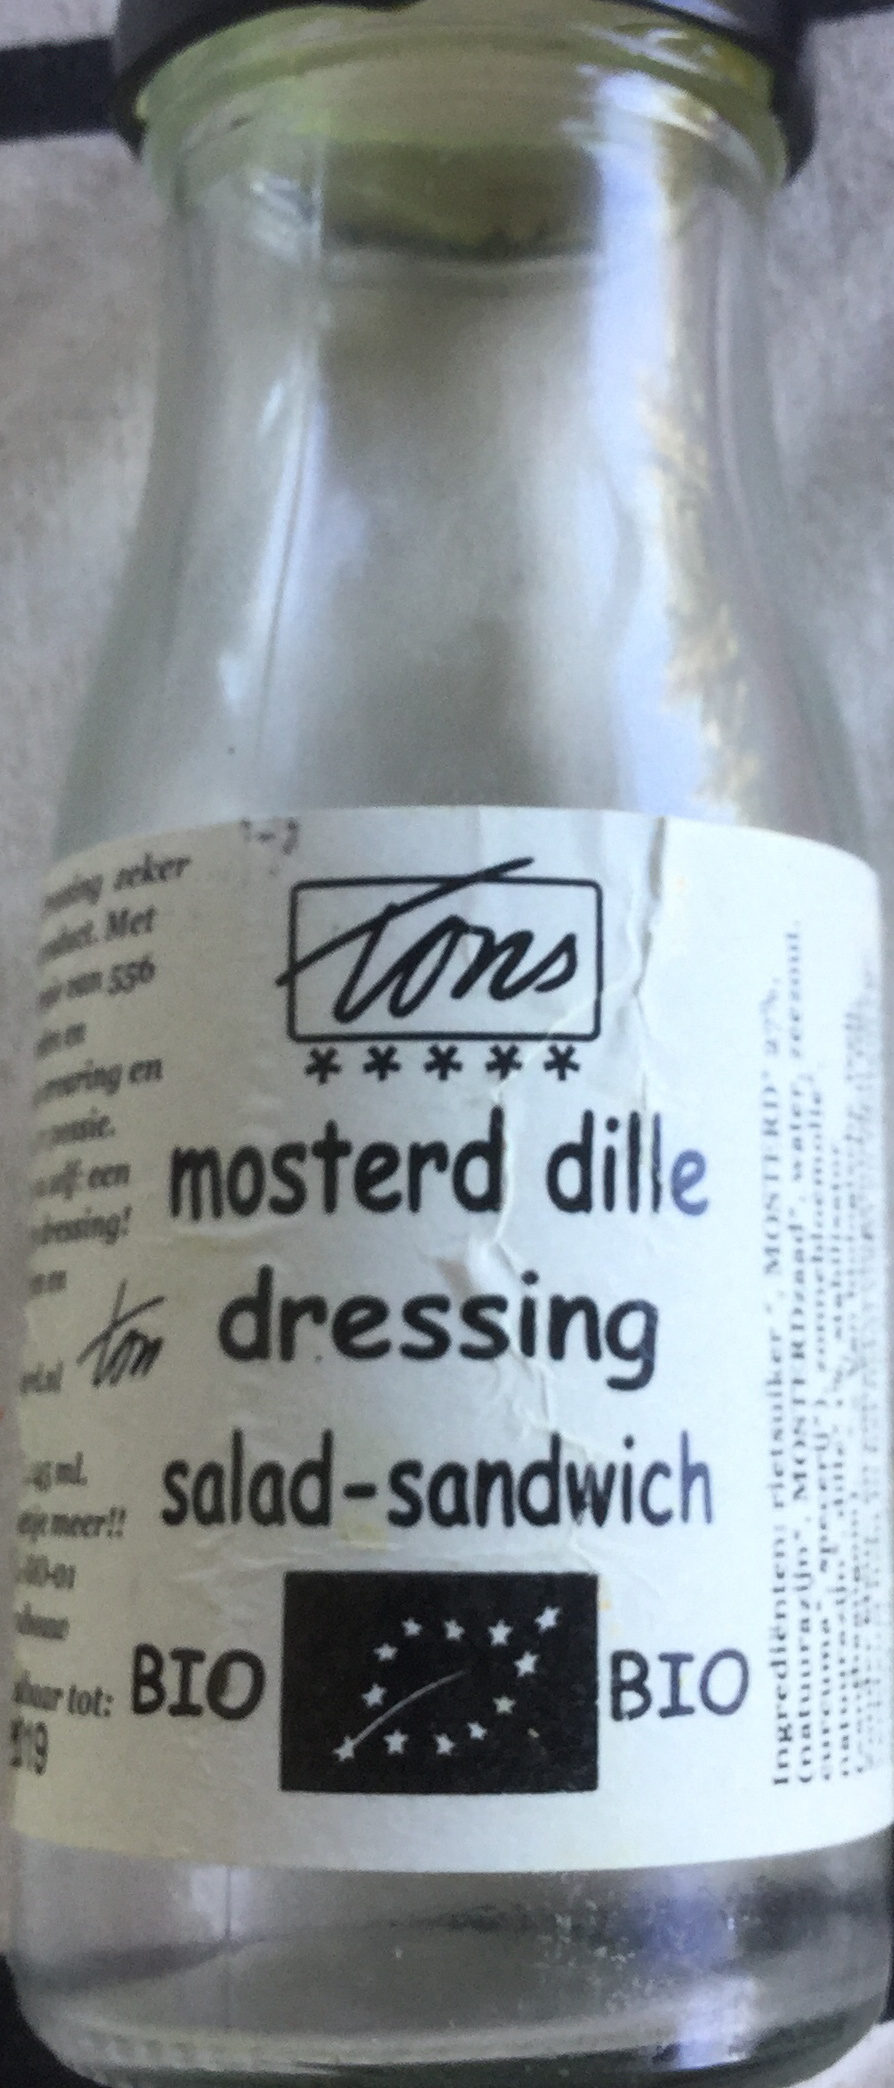 Mosterd dille dressing - Product